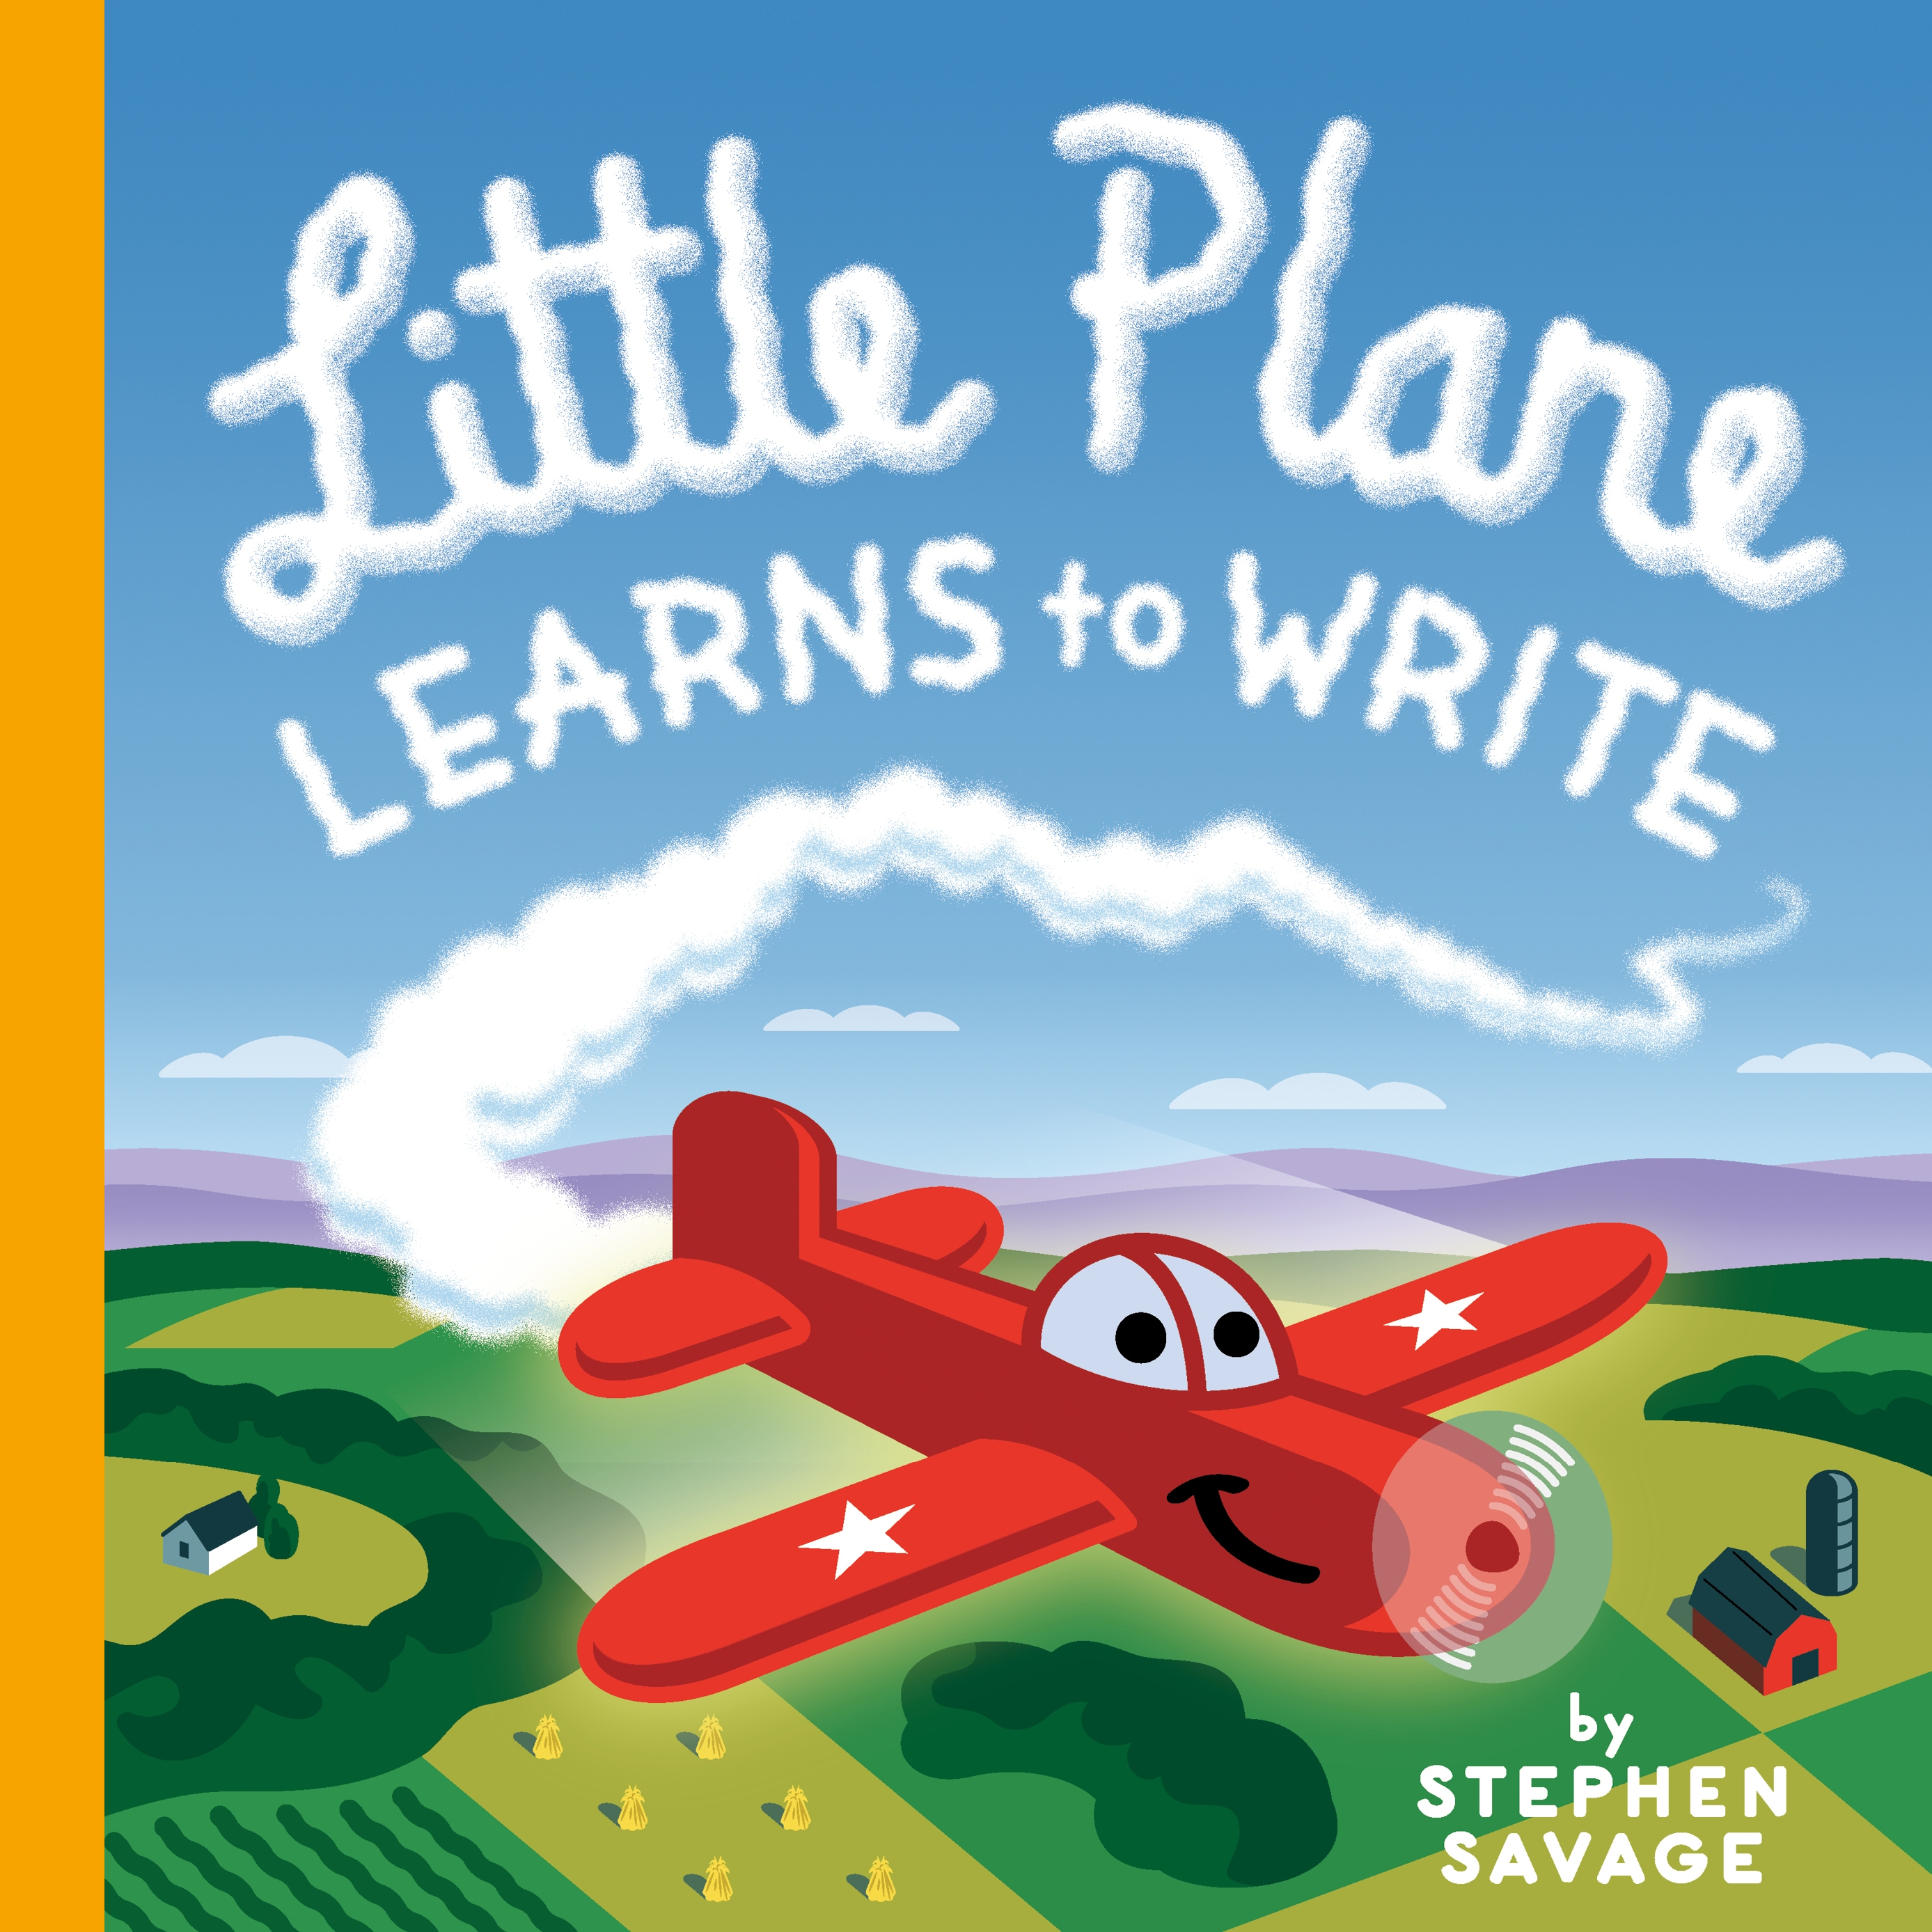 Sunday Story Time with Stephen Savage (Author and Illustrator of Little Plane Learns to Write )